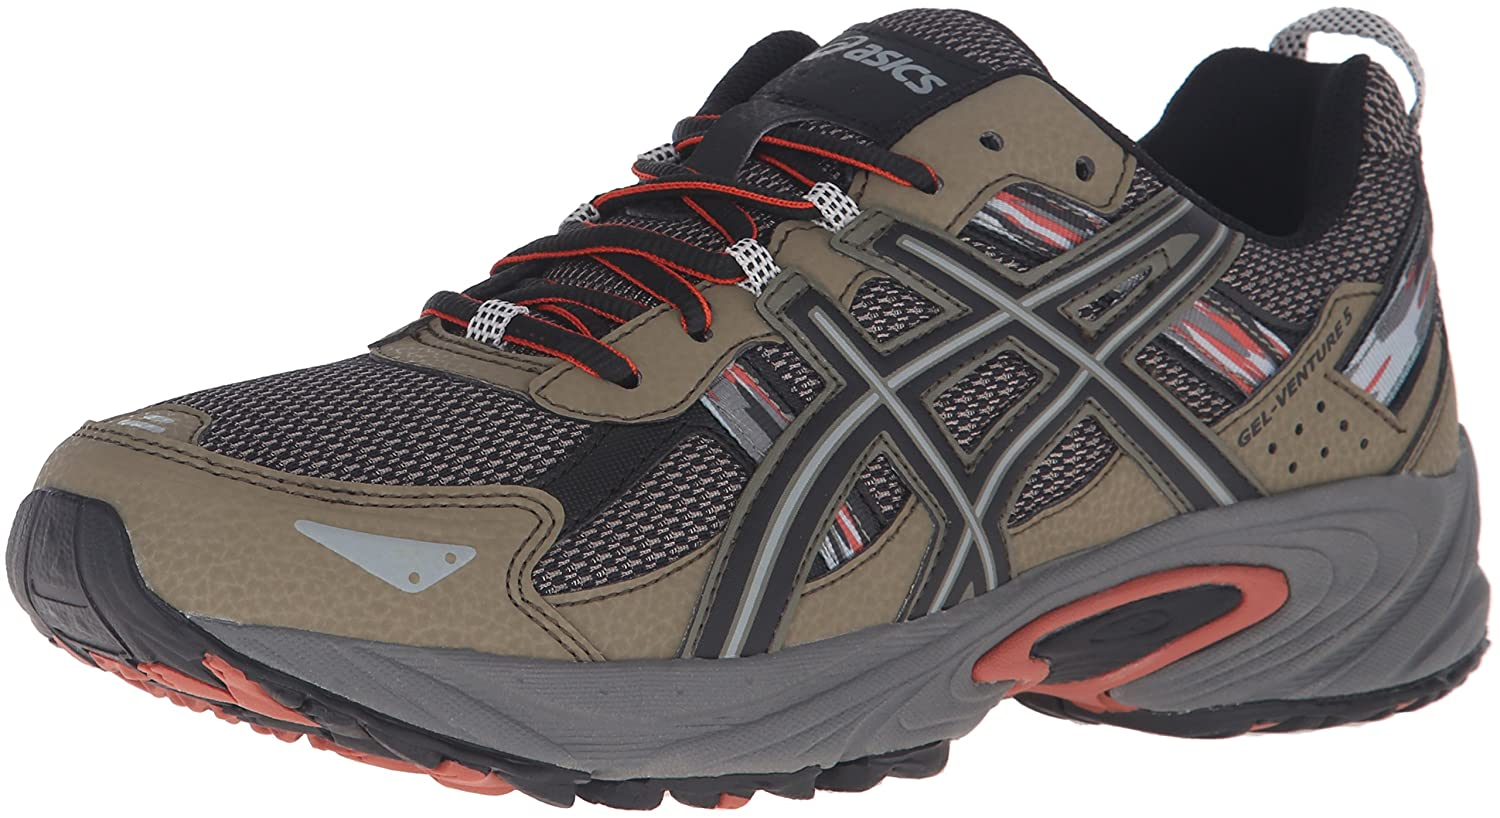 Dusky Green Black Cinnamon ASICS Men's Gel Venture 5 Running shoes